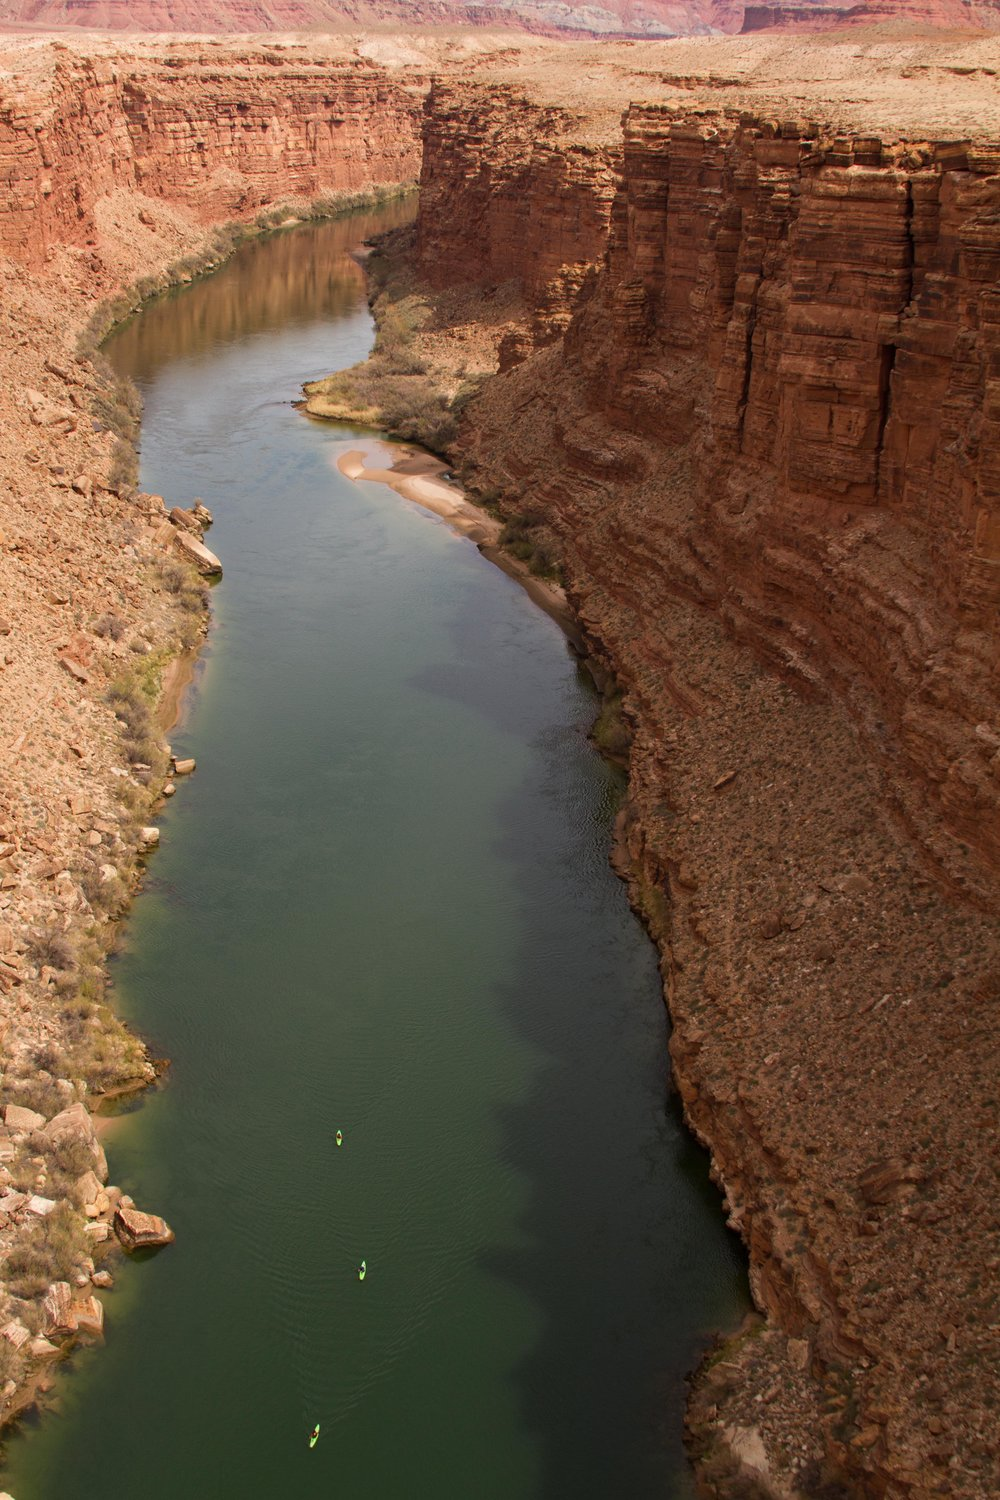 Kayakers near the start of the paddle down the Colorado River. Photo by Dave Nevins.